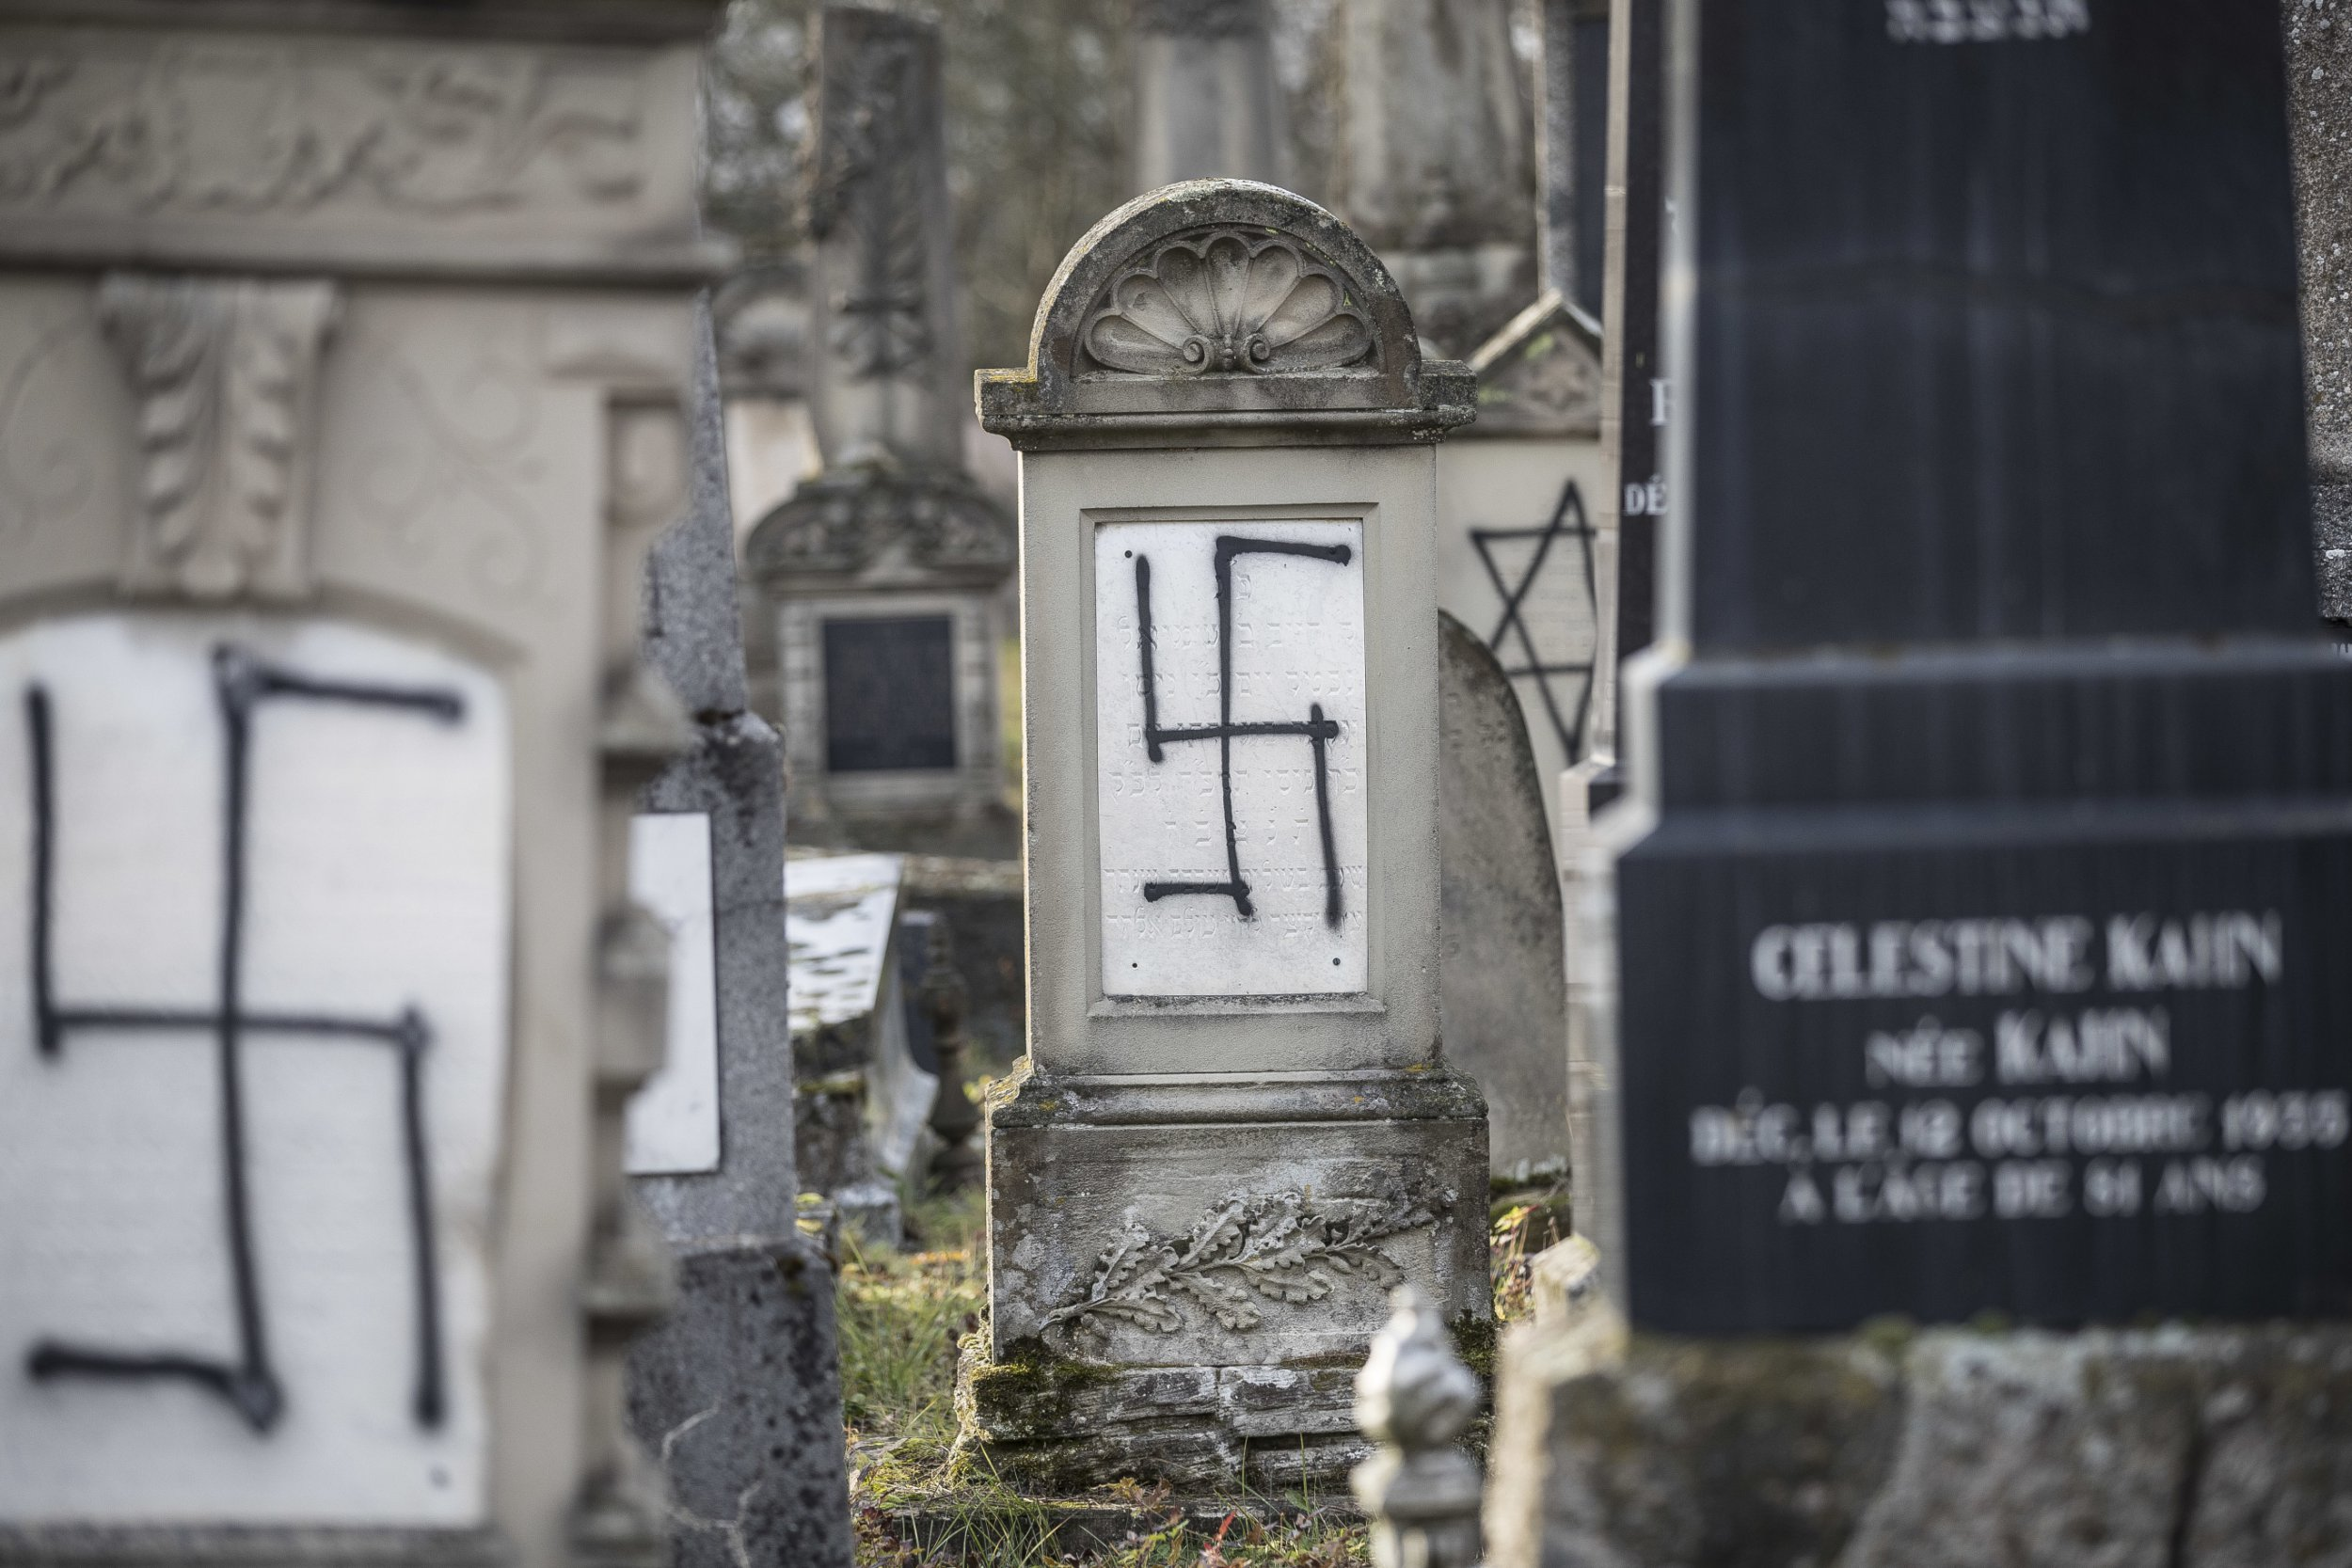 Jewish tombstones are desecrated with swastikas in the Herrlisheim Jewish cemetery, north of Strasbourg, eastern France, Thursday, Dec. 13, 2018. Dozens of tombs were defaced and discovered Tuesday. (AP Photo/Jean-Francois Badias)